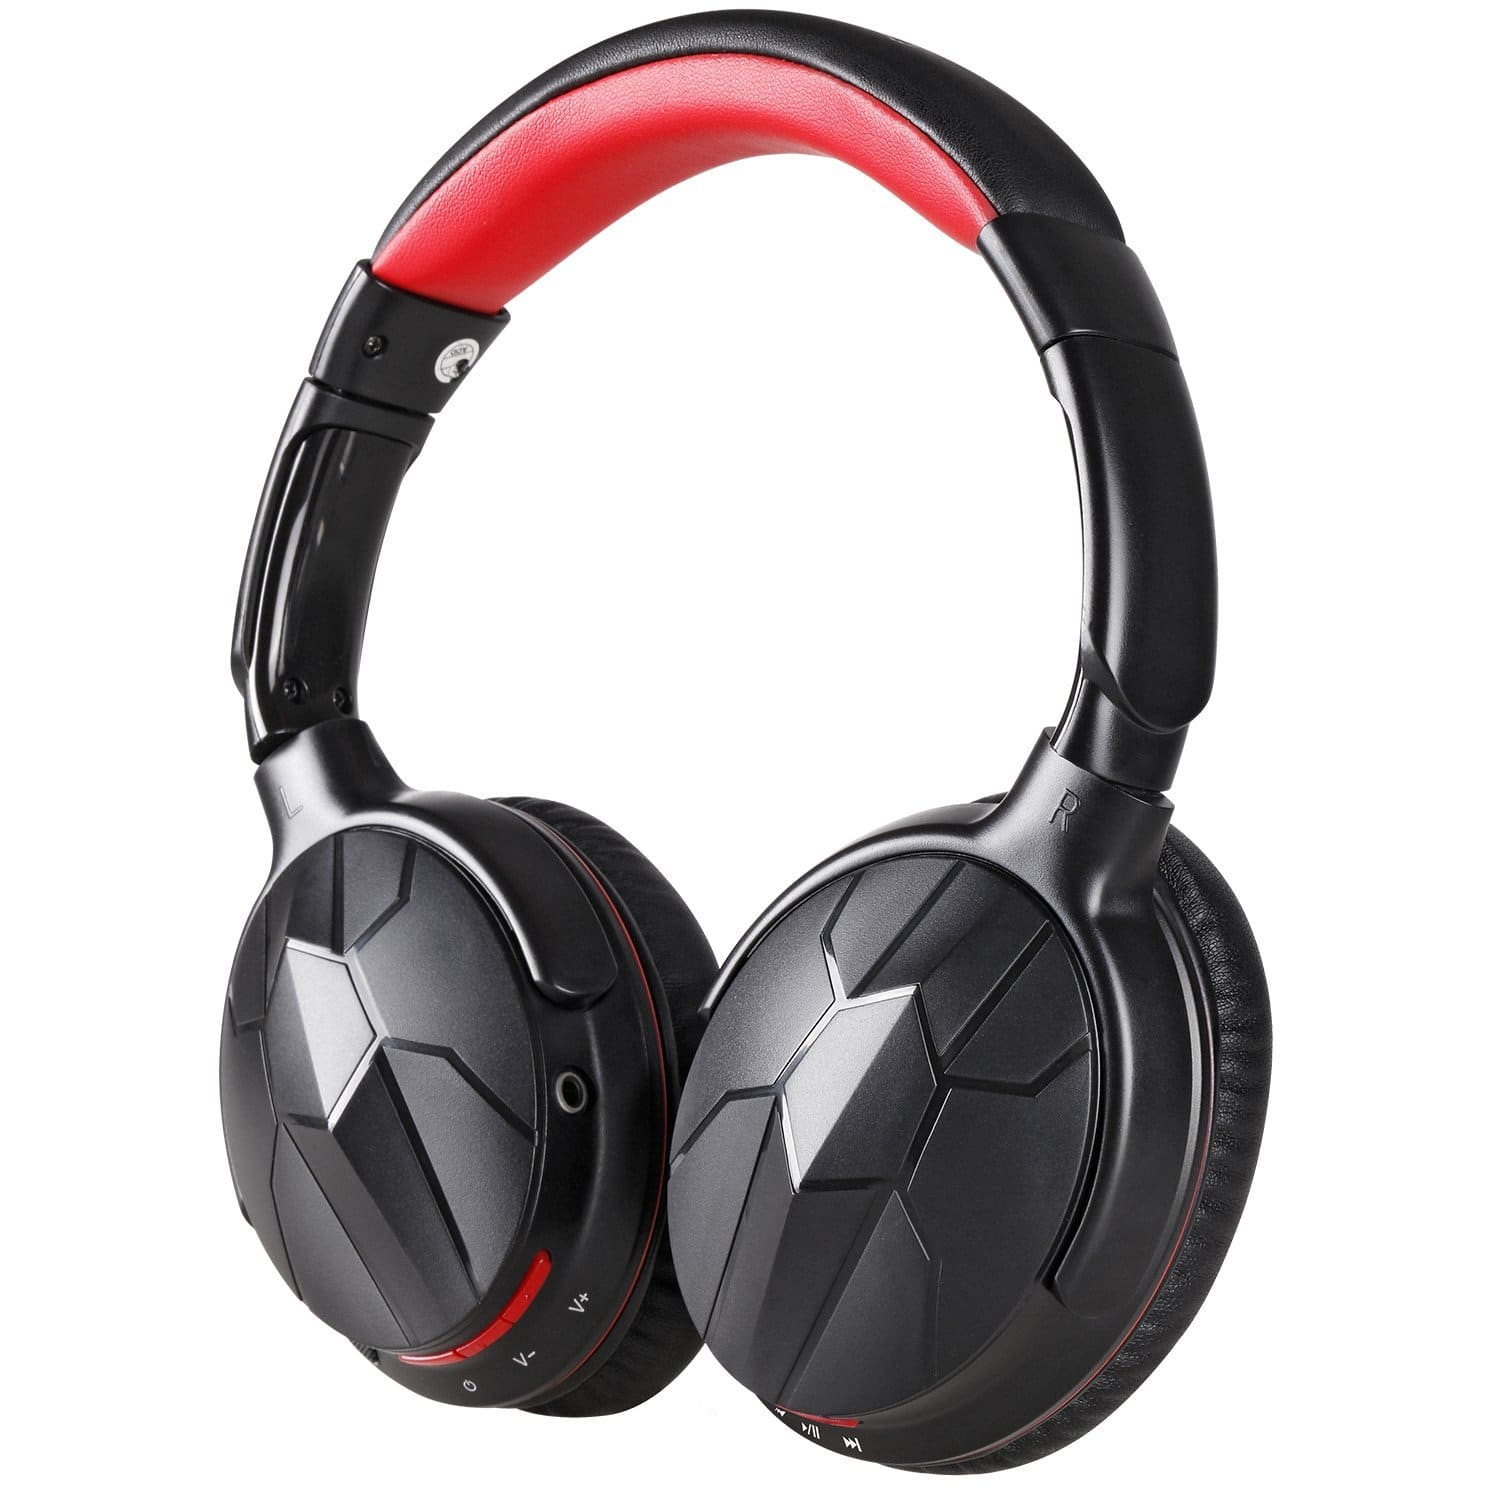 Mixcder HD501 Bluetooth Noise Cancelling  Over Ear Headphones w/ Built In Mic $29.99 @ Amazon